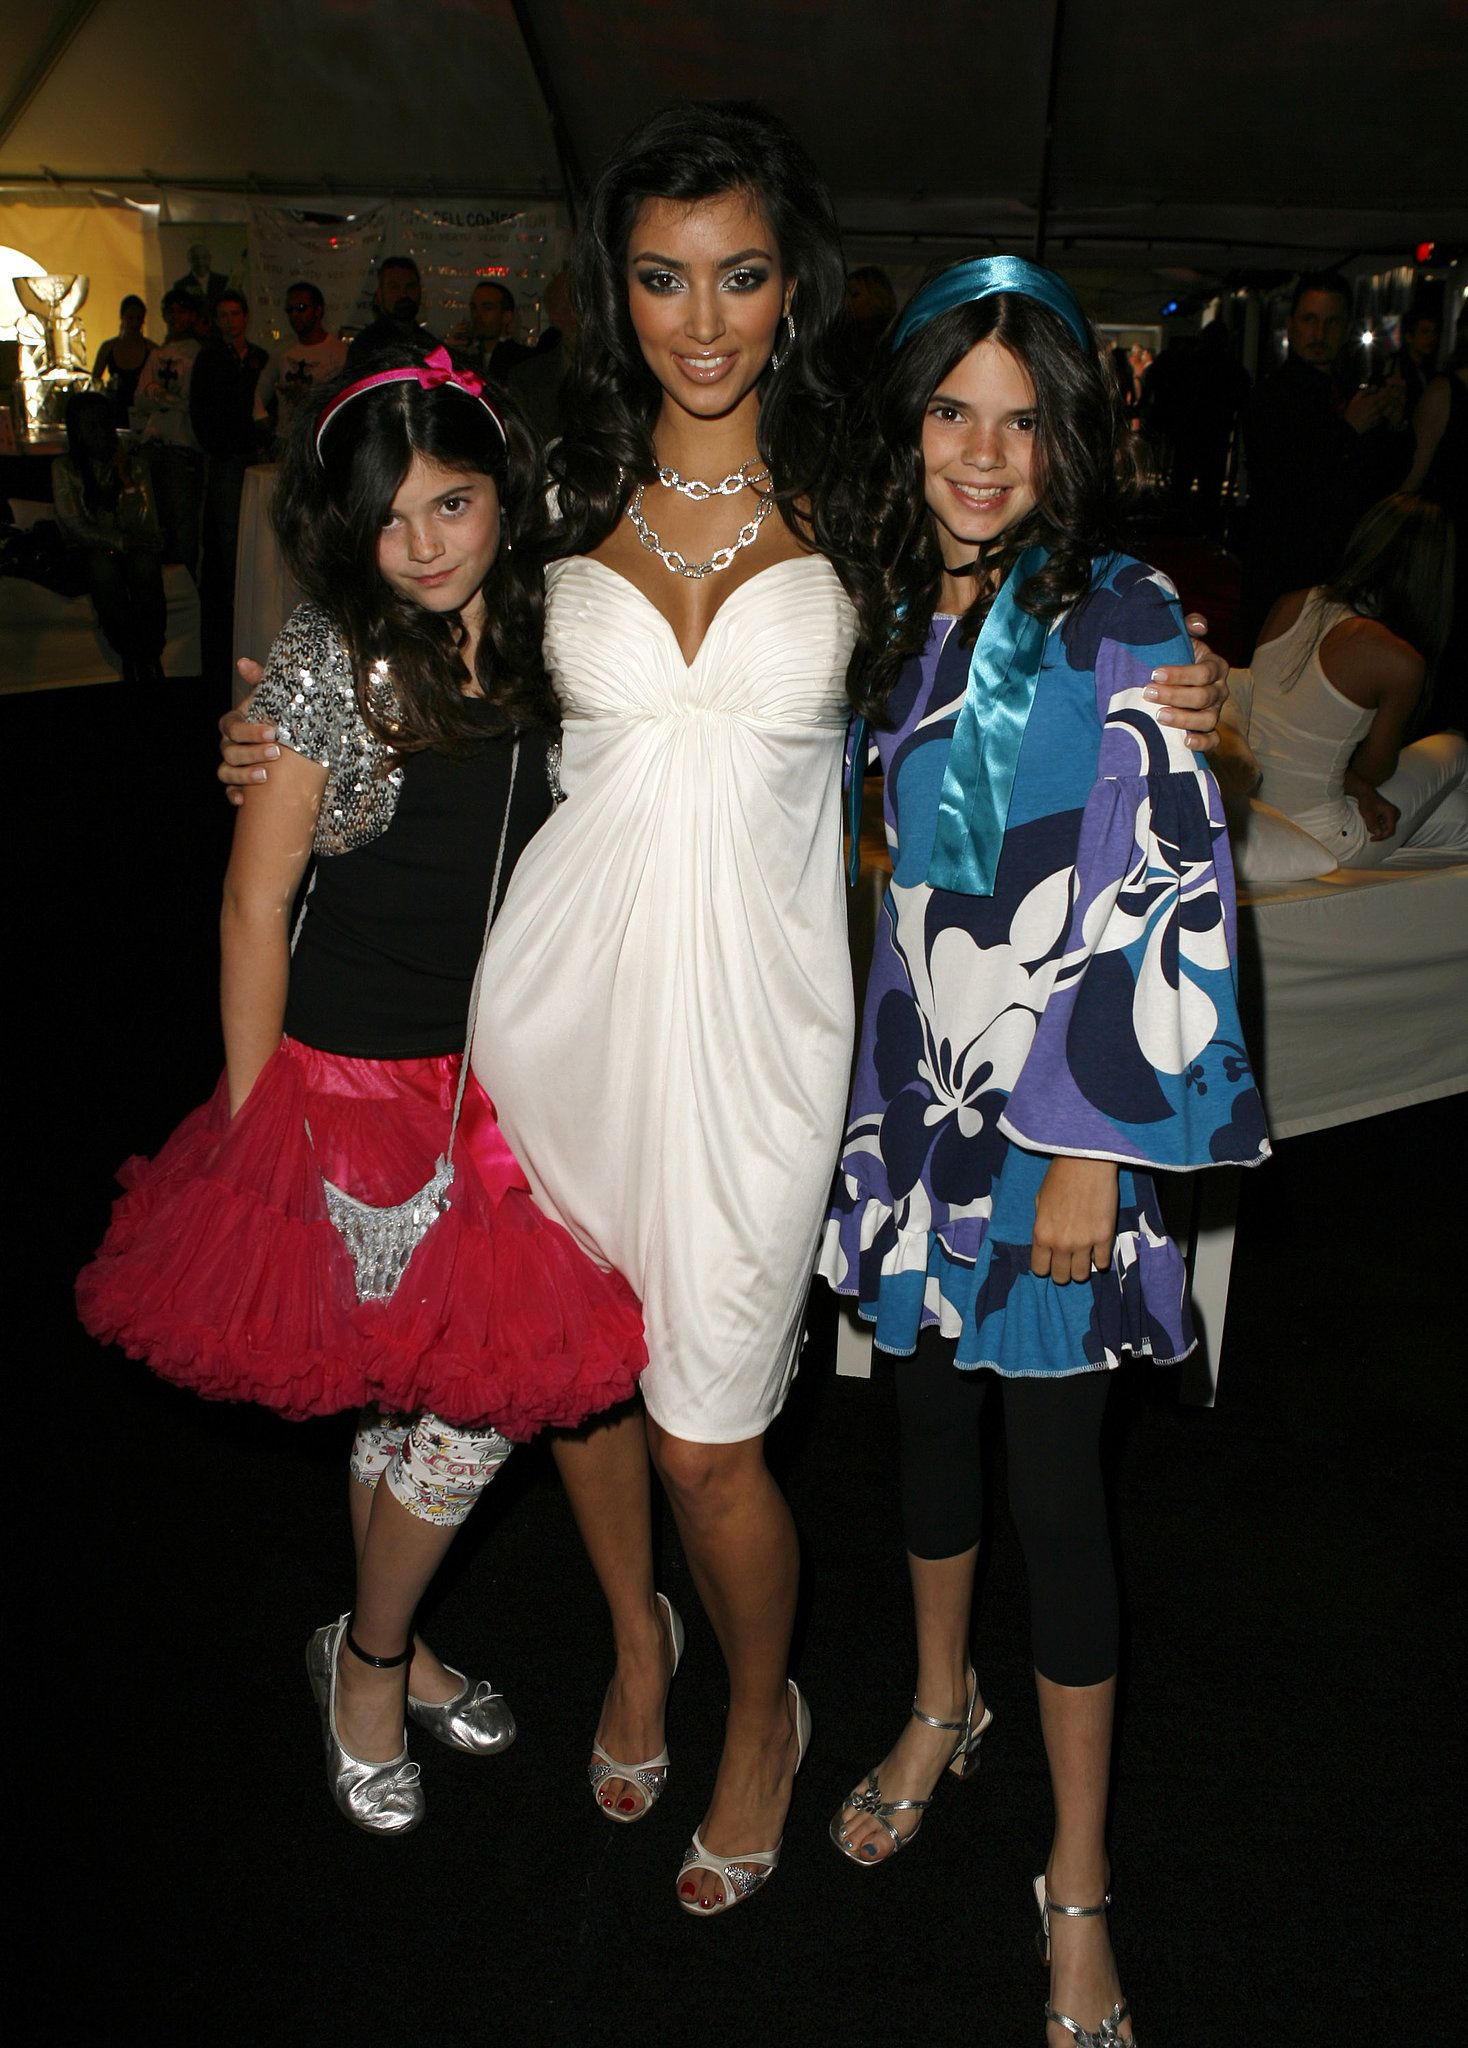 6de9a949531d Kim Kardashian was joined by her younger sisters Kendall and Kylie Jenner  for the Dash Fall fashion show in March 2007.